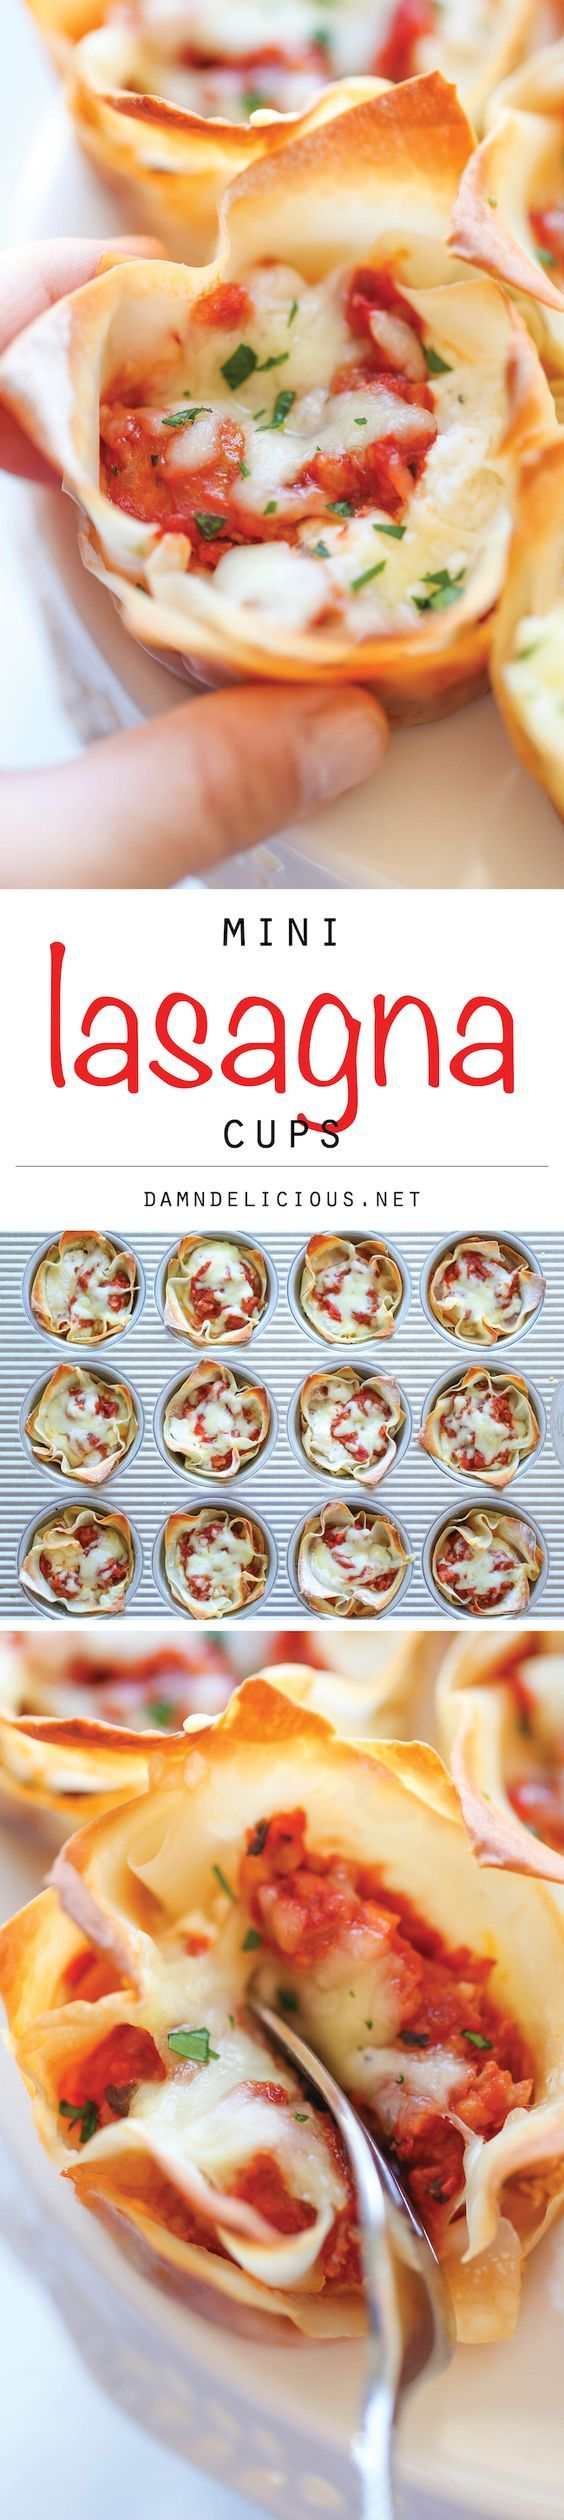 Mini Lasagna Cups - The easiest, simplest lasagna you will ever make, conveniently made into single-serving portions!: